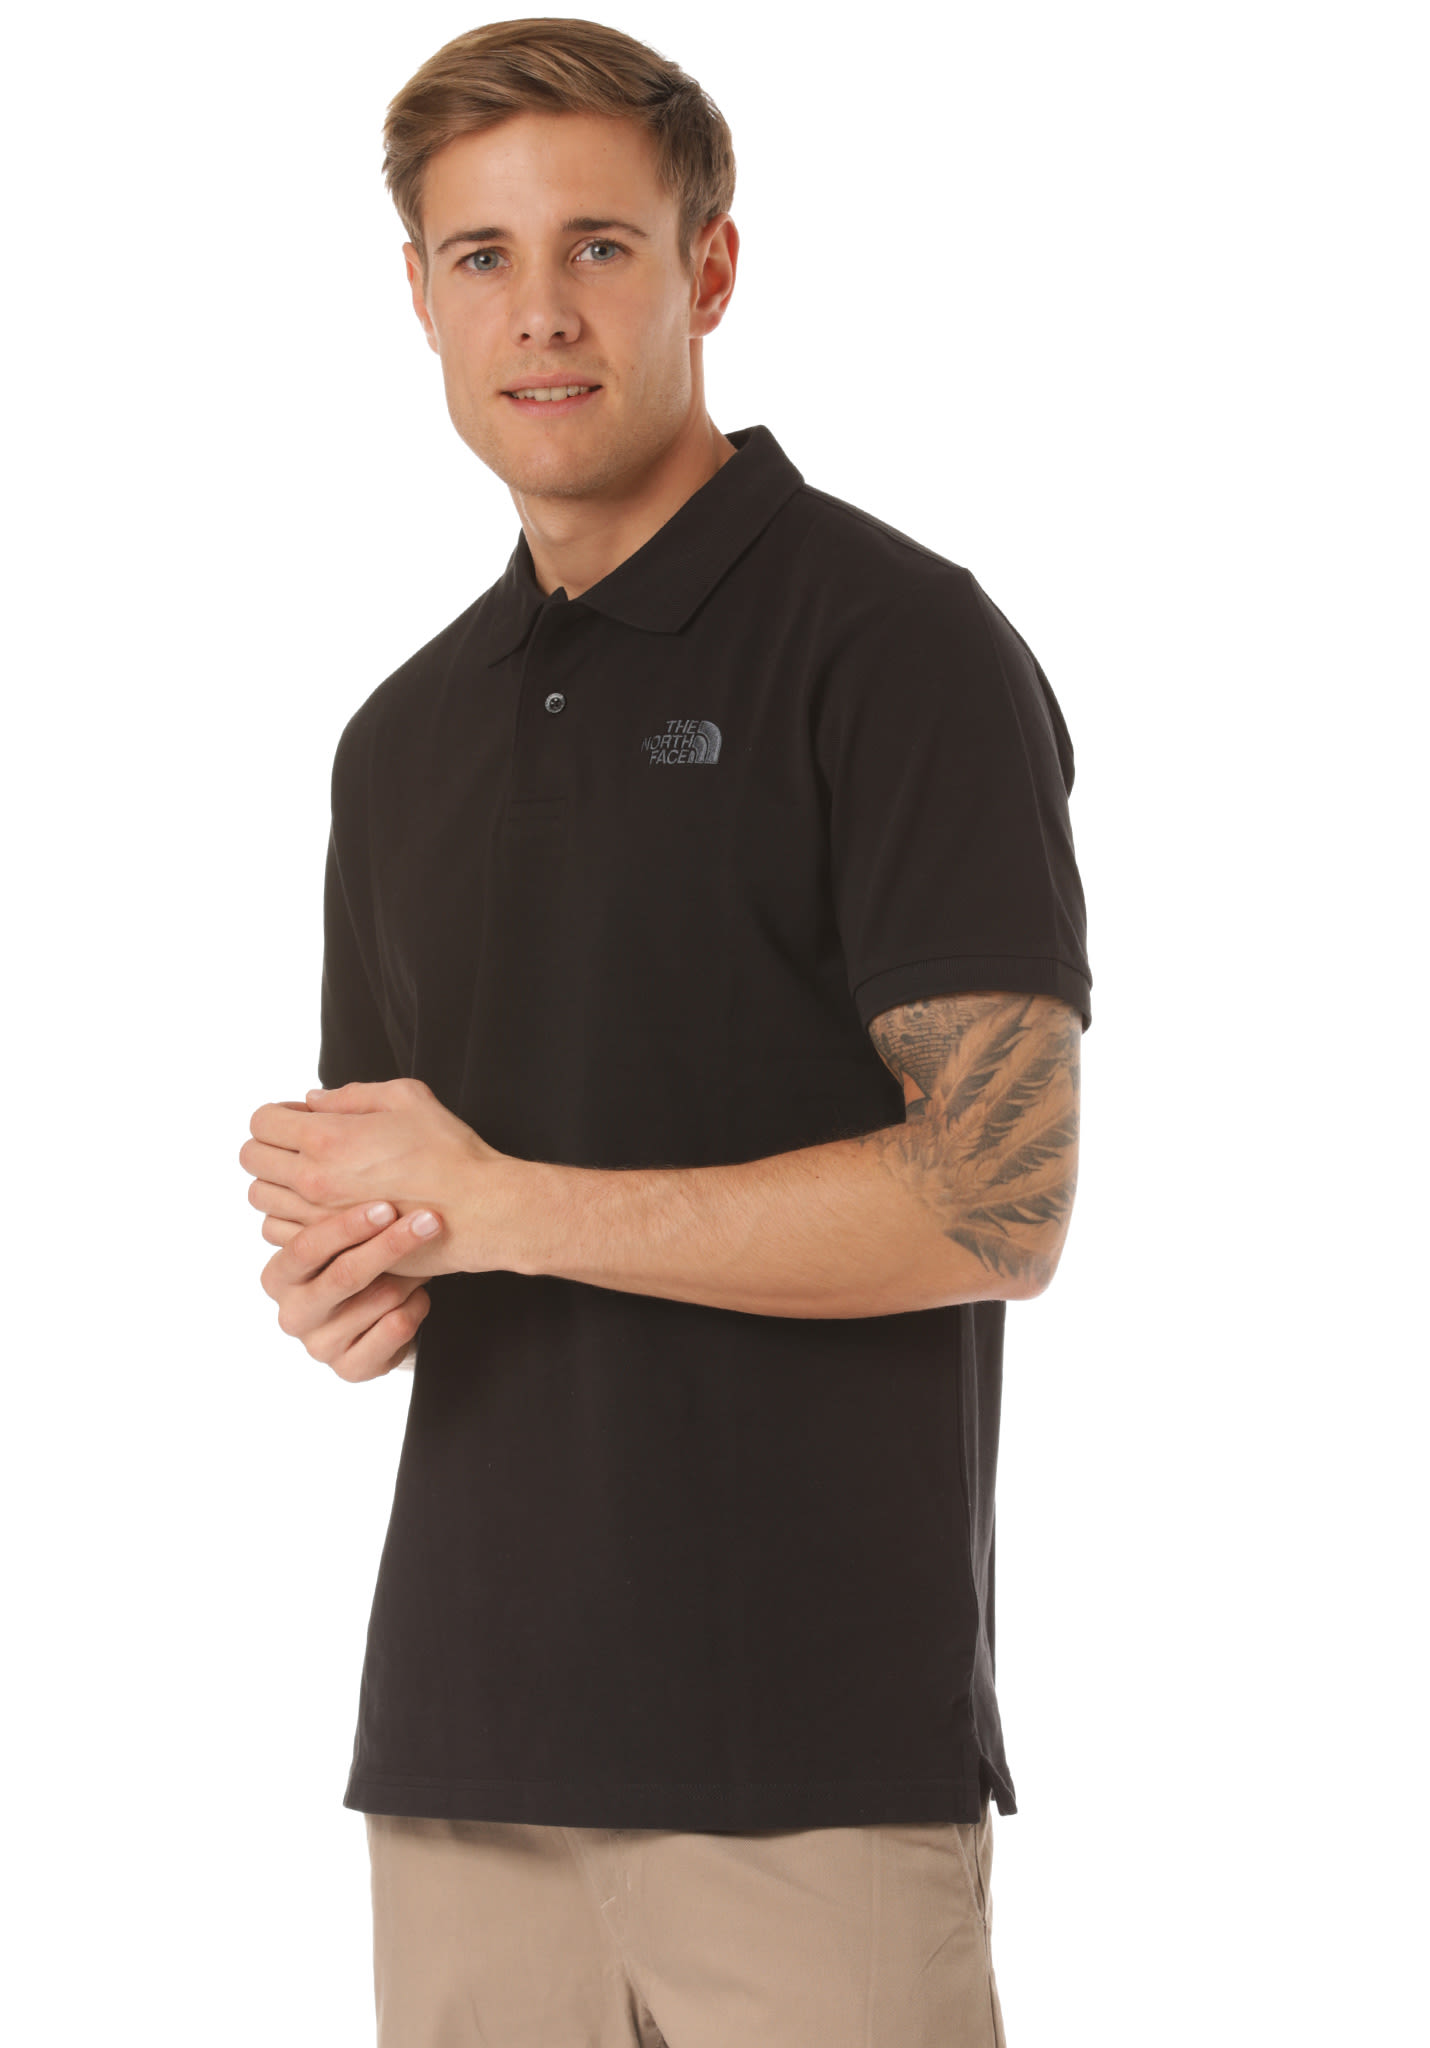 74140f862 THE NORTH FACE Piquet - Polo Shirt for Men - Black